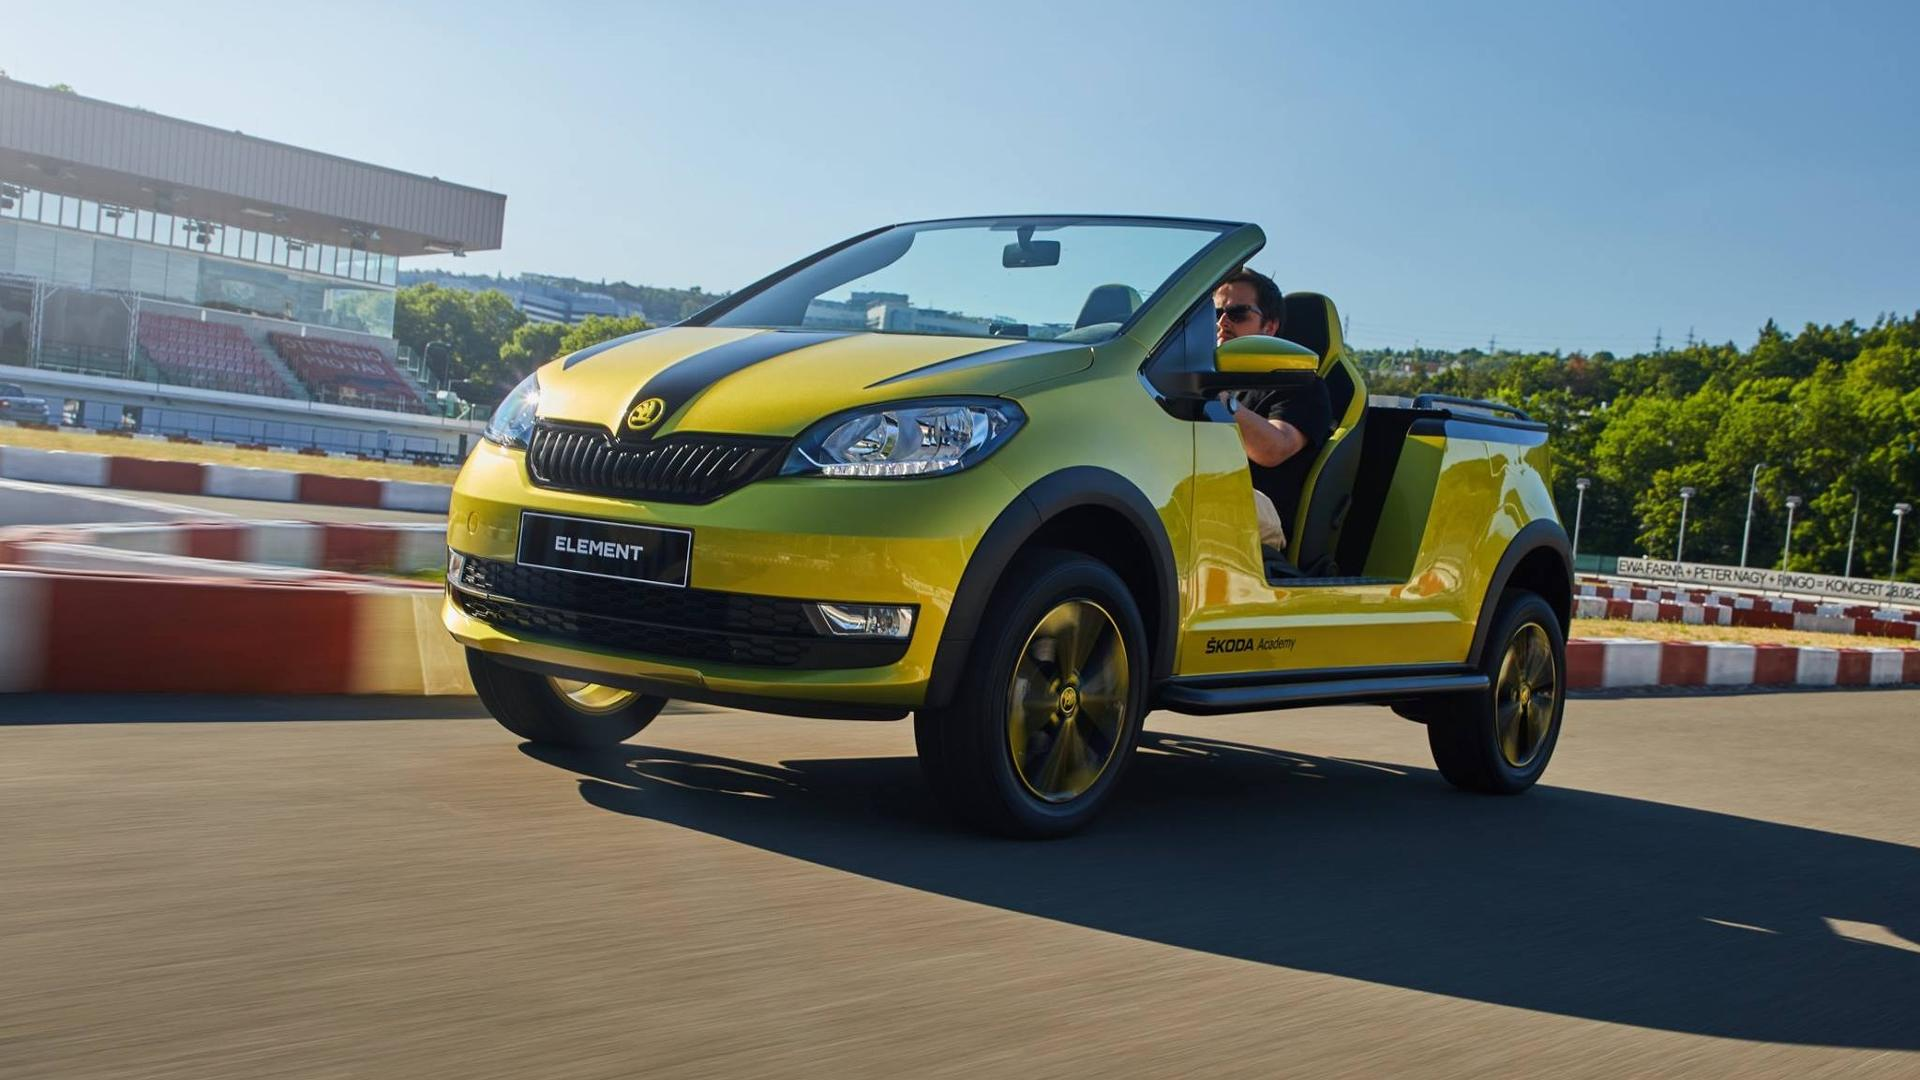 Skoda Element Electric Buggy concept (3)